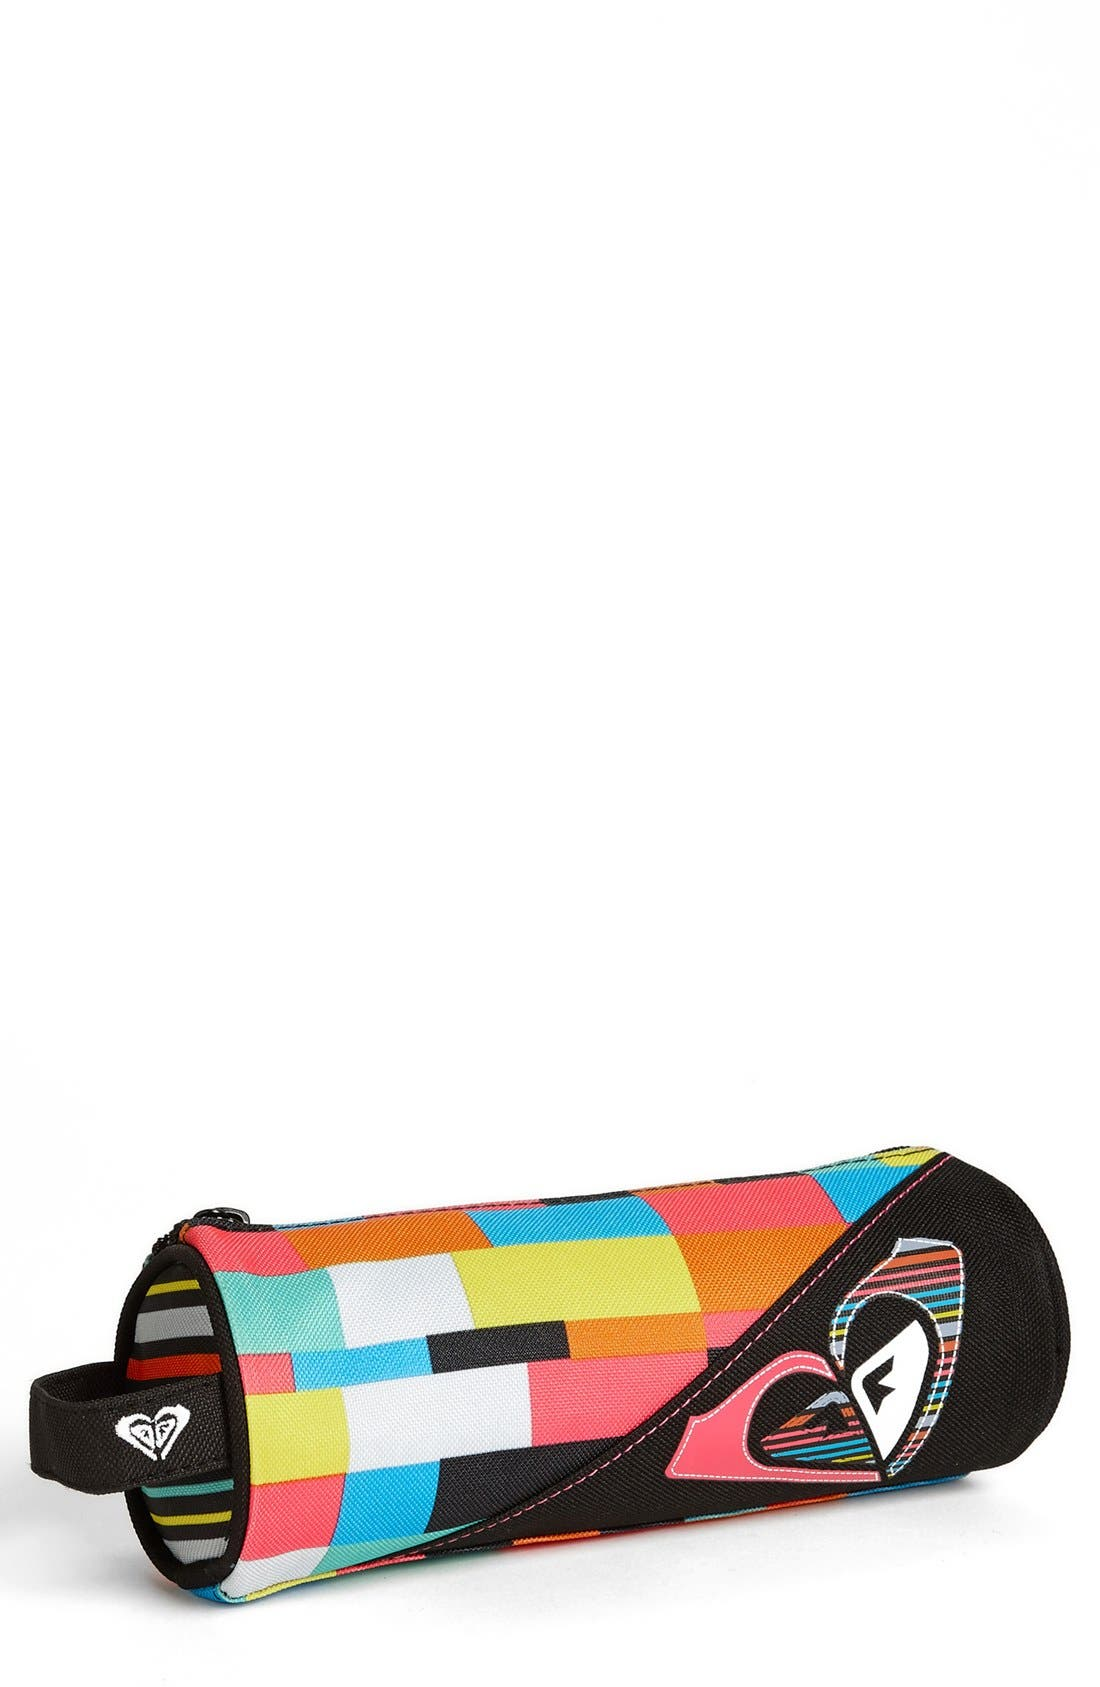 'Scribble' Pencil Case,                         Main,                         color, Multi/ Black/ Pink/ Blue